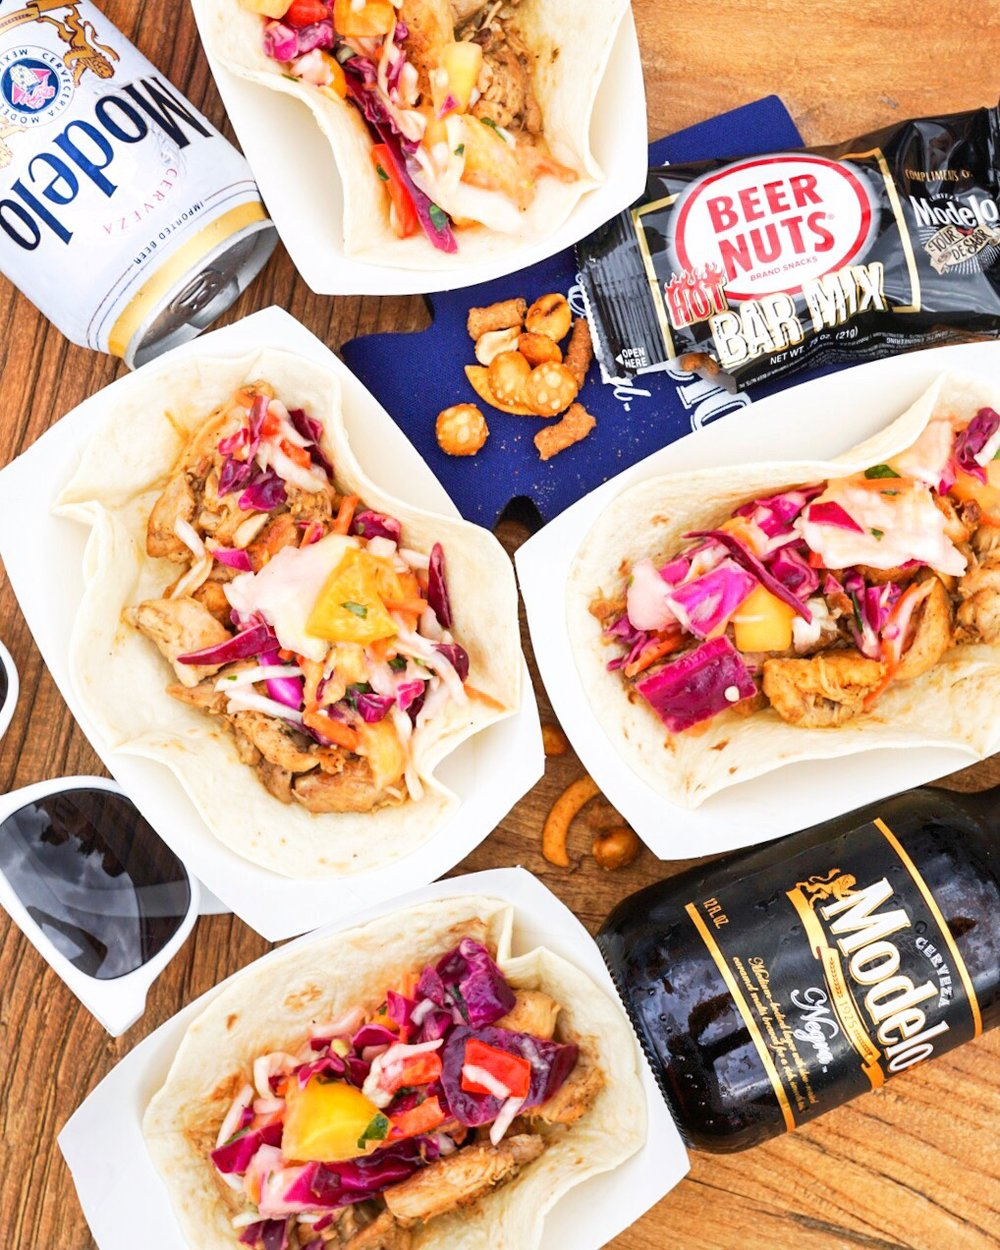 I spent the afternoon hanging with Modelo, the official beer sponsor of the event, stuffing my face with Modelo-Infused Spiced Chicken Tacos and sipping on great beer.